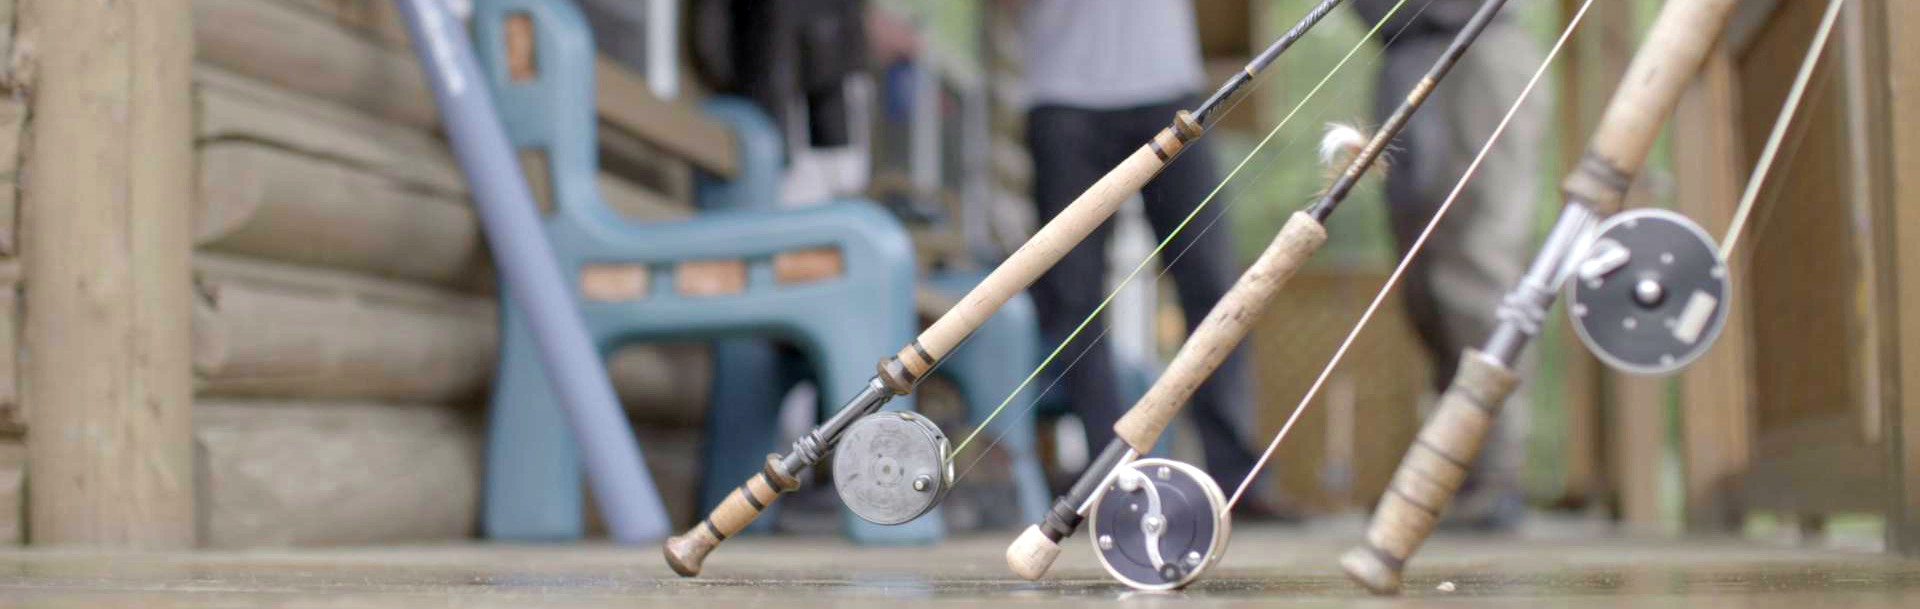 3 fly fishing rods